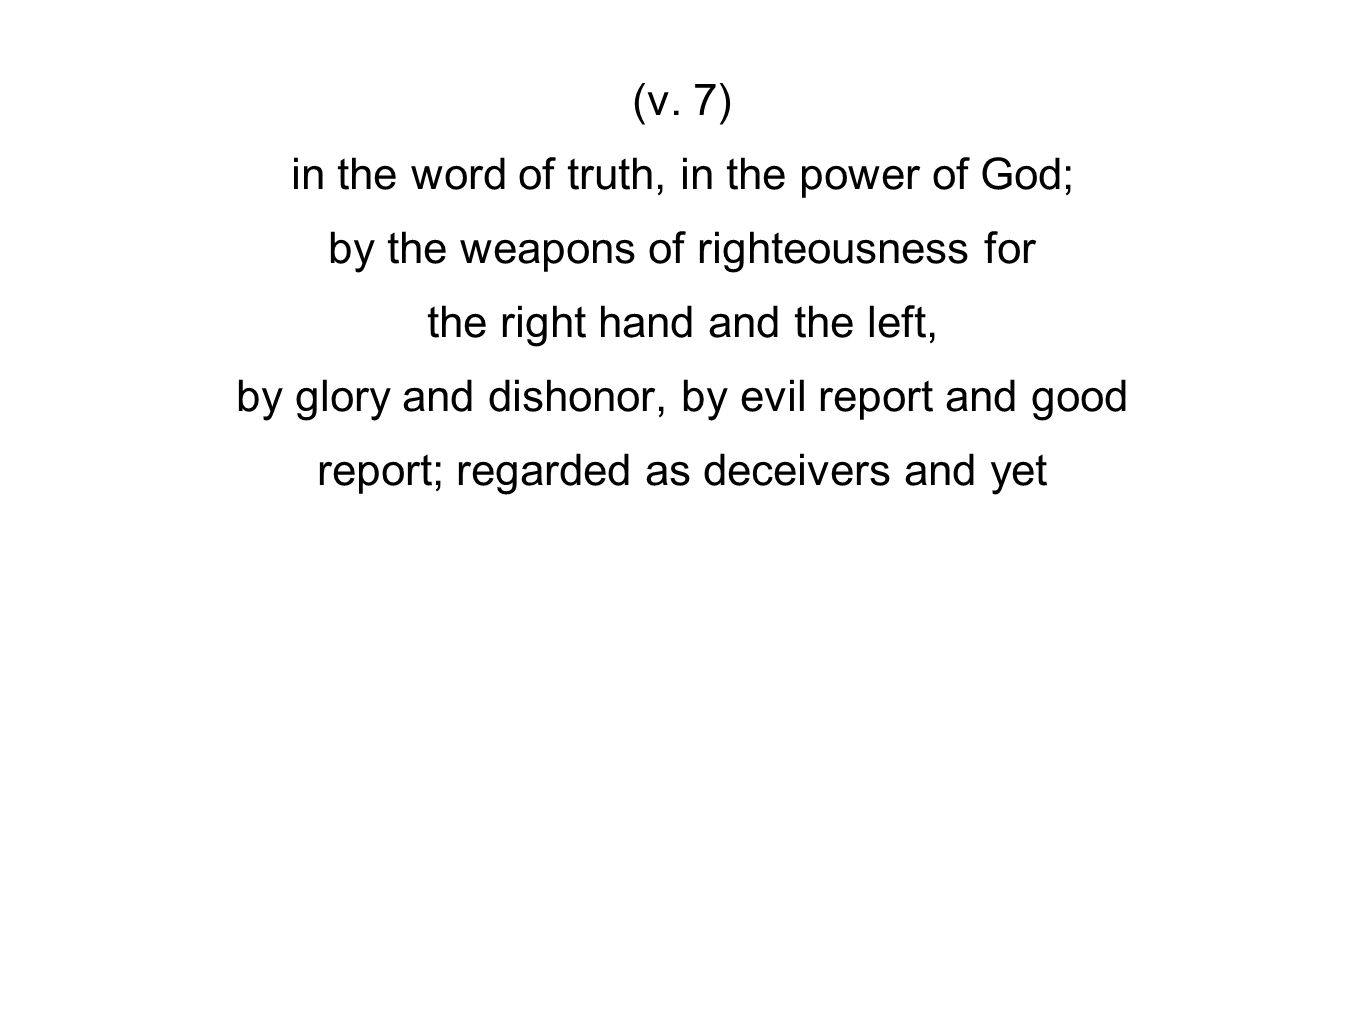 (v. 7) in the word of truth, in the power of God; by the weapons of righteousness for the right hand and the left, by glory and dishonor, by evil repo